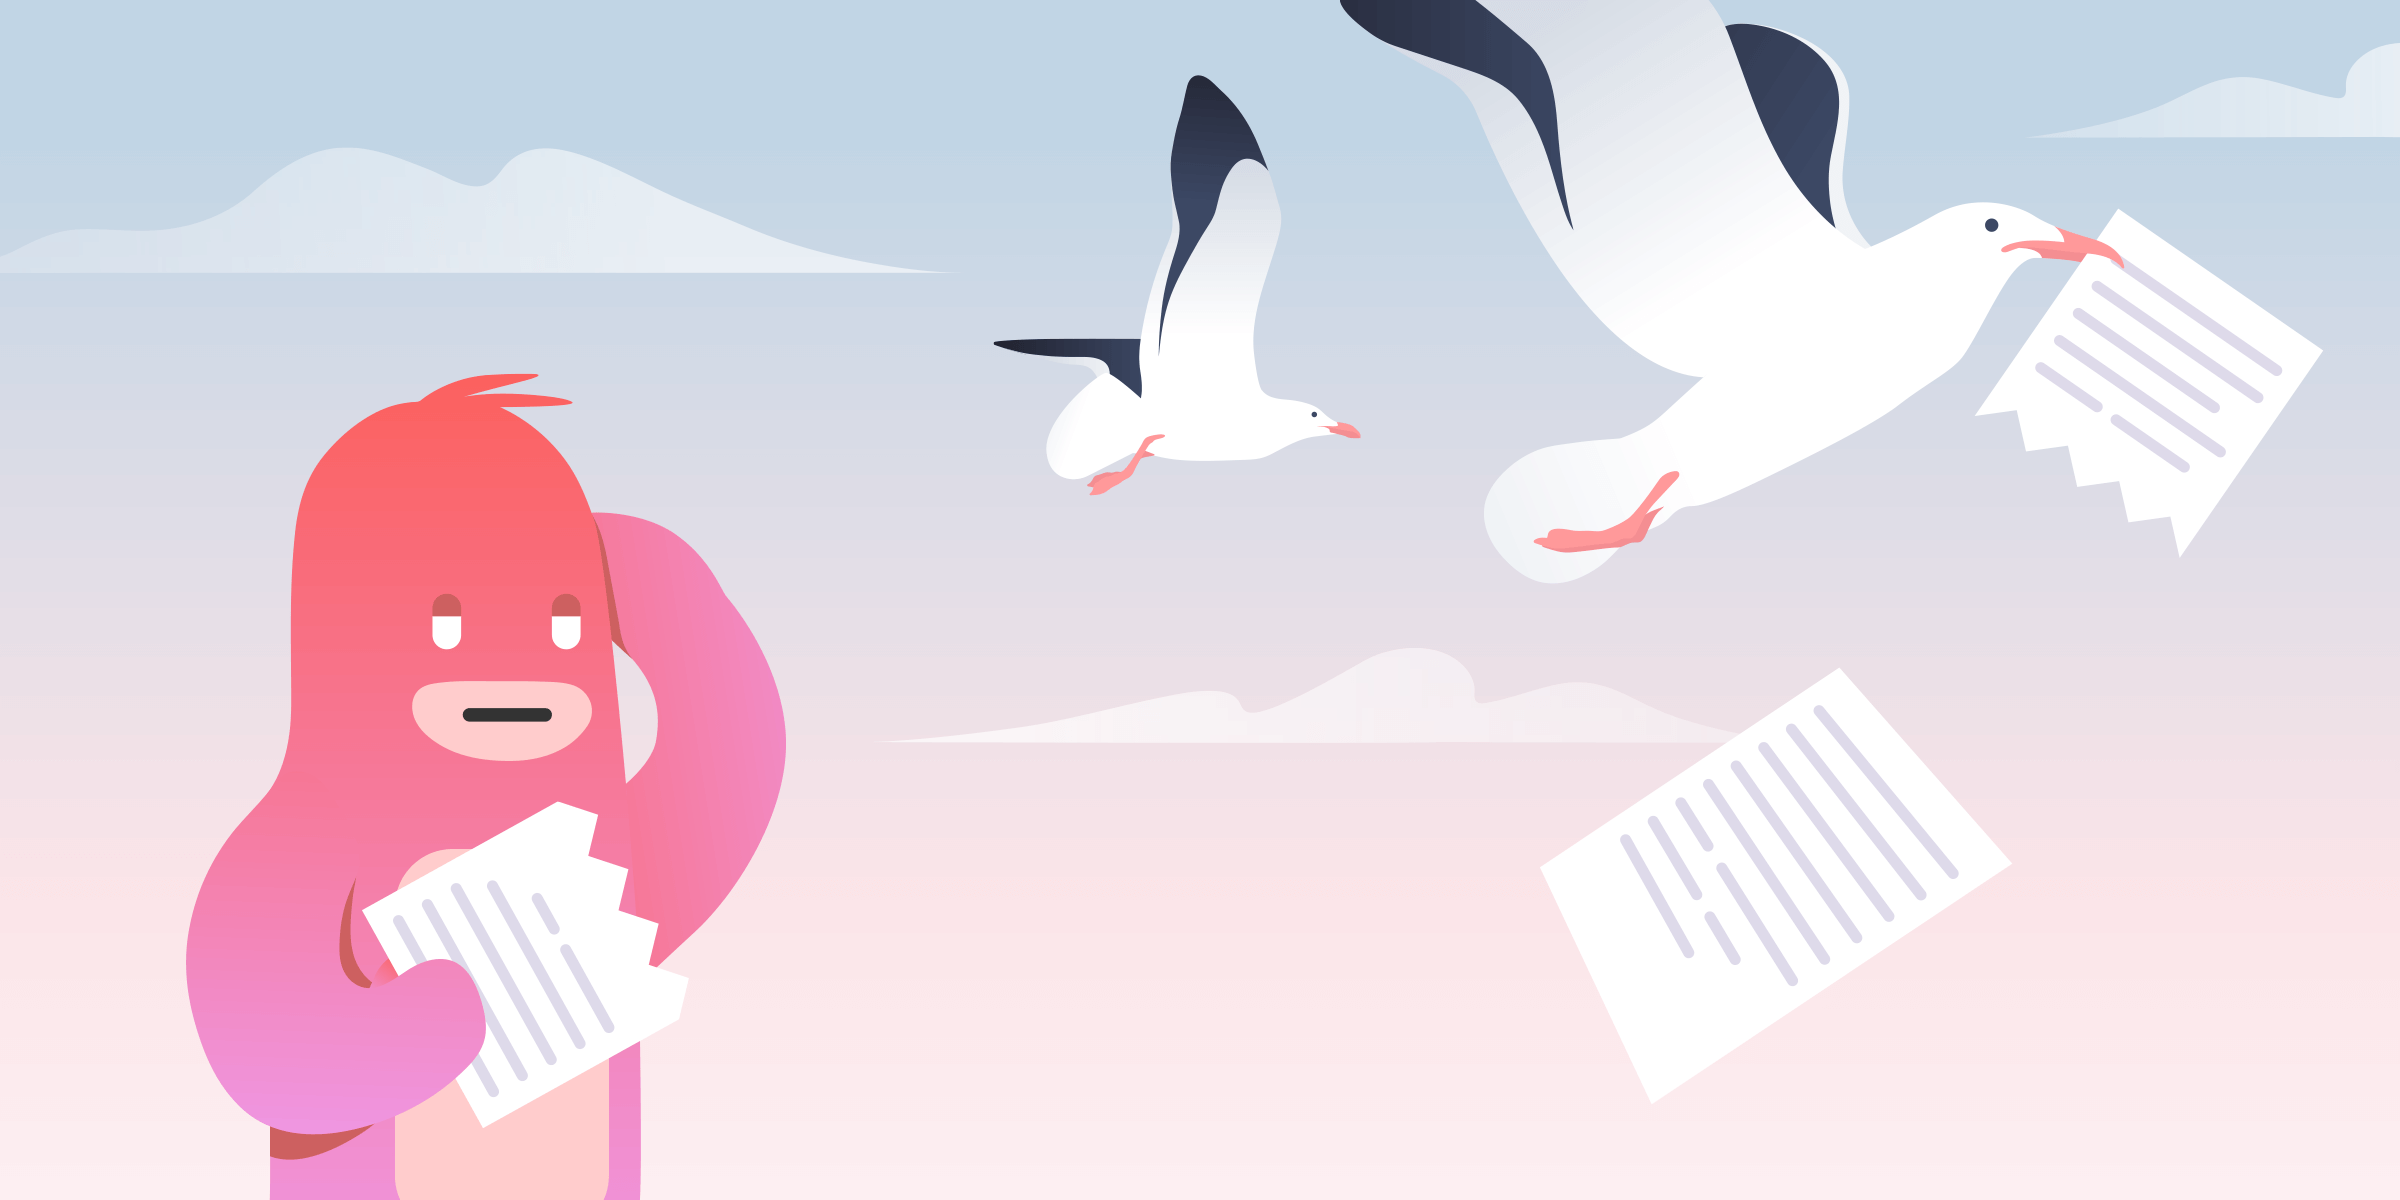 How to avoid unwanted negative feedback, like these seagulls swooping in on this character's work.